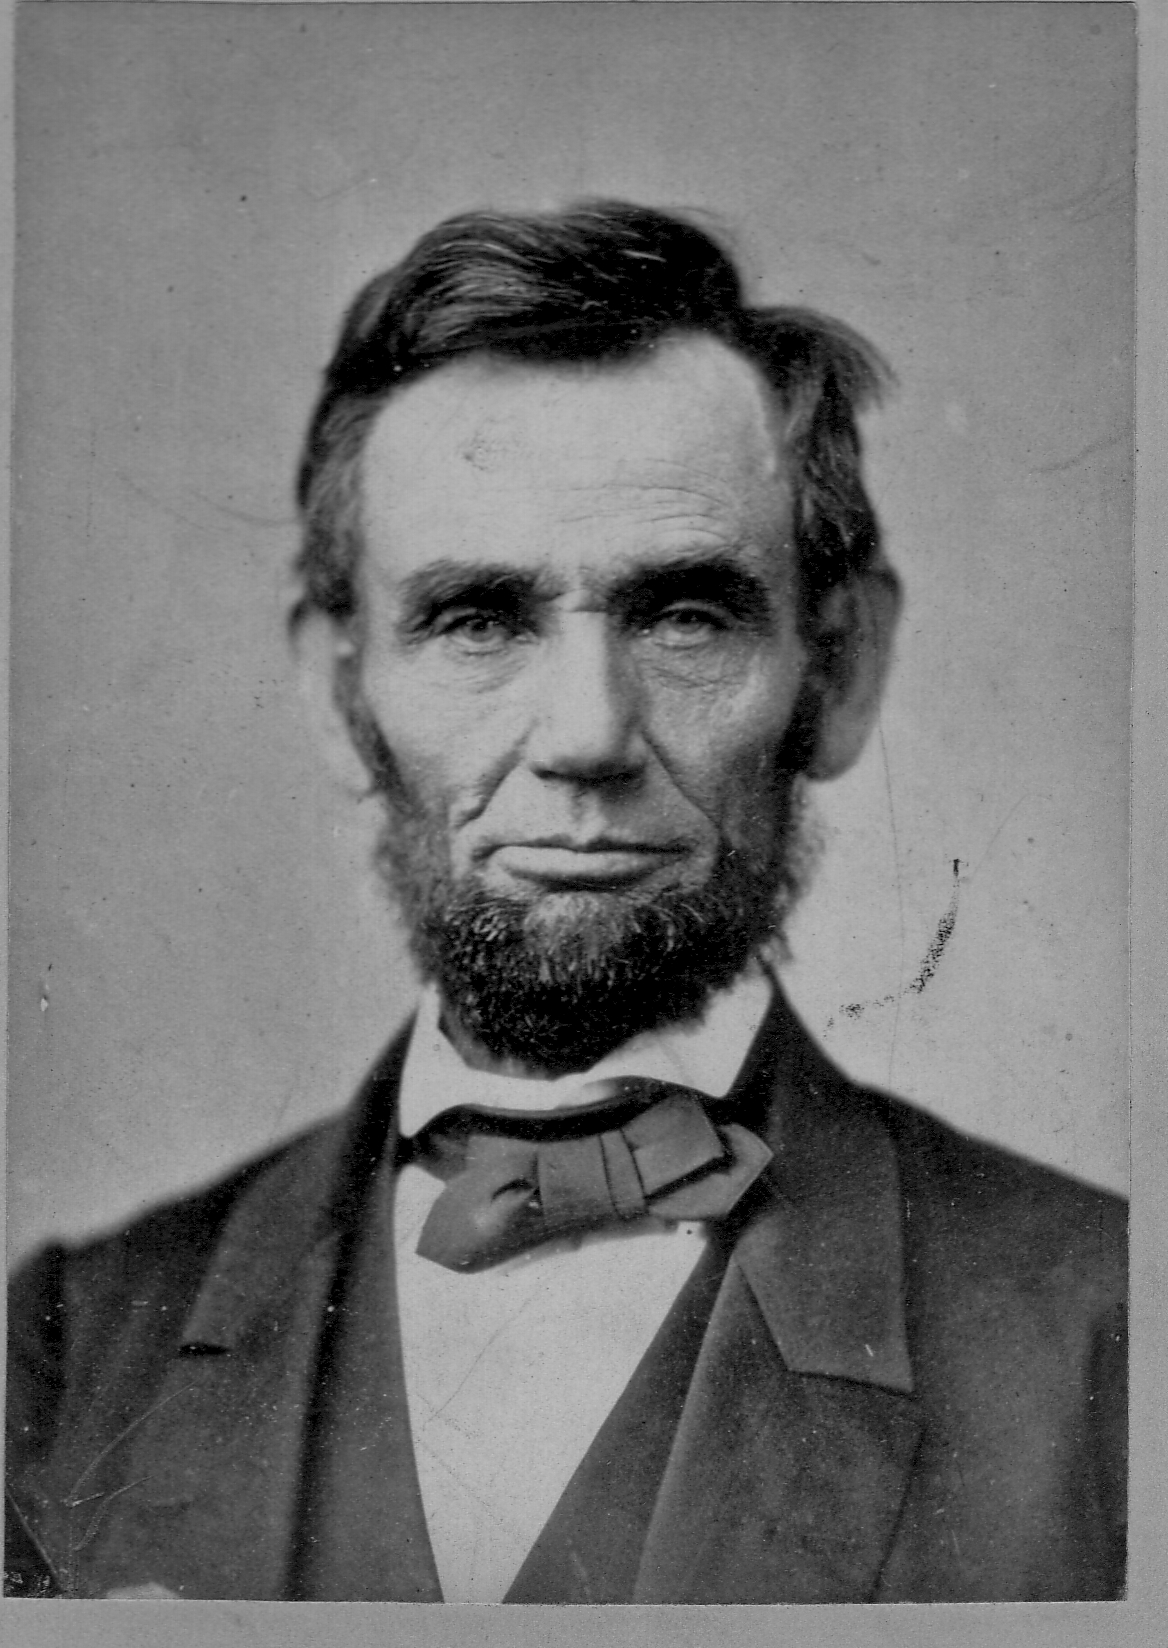 black and white image of Abraham Lincoln